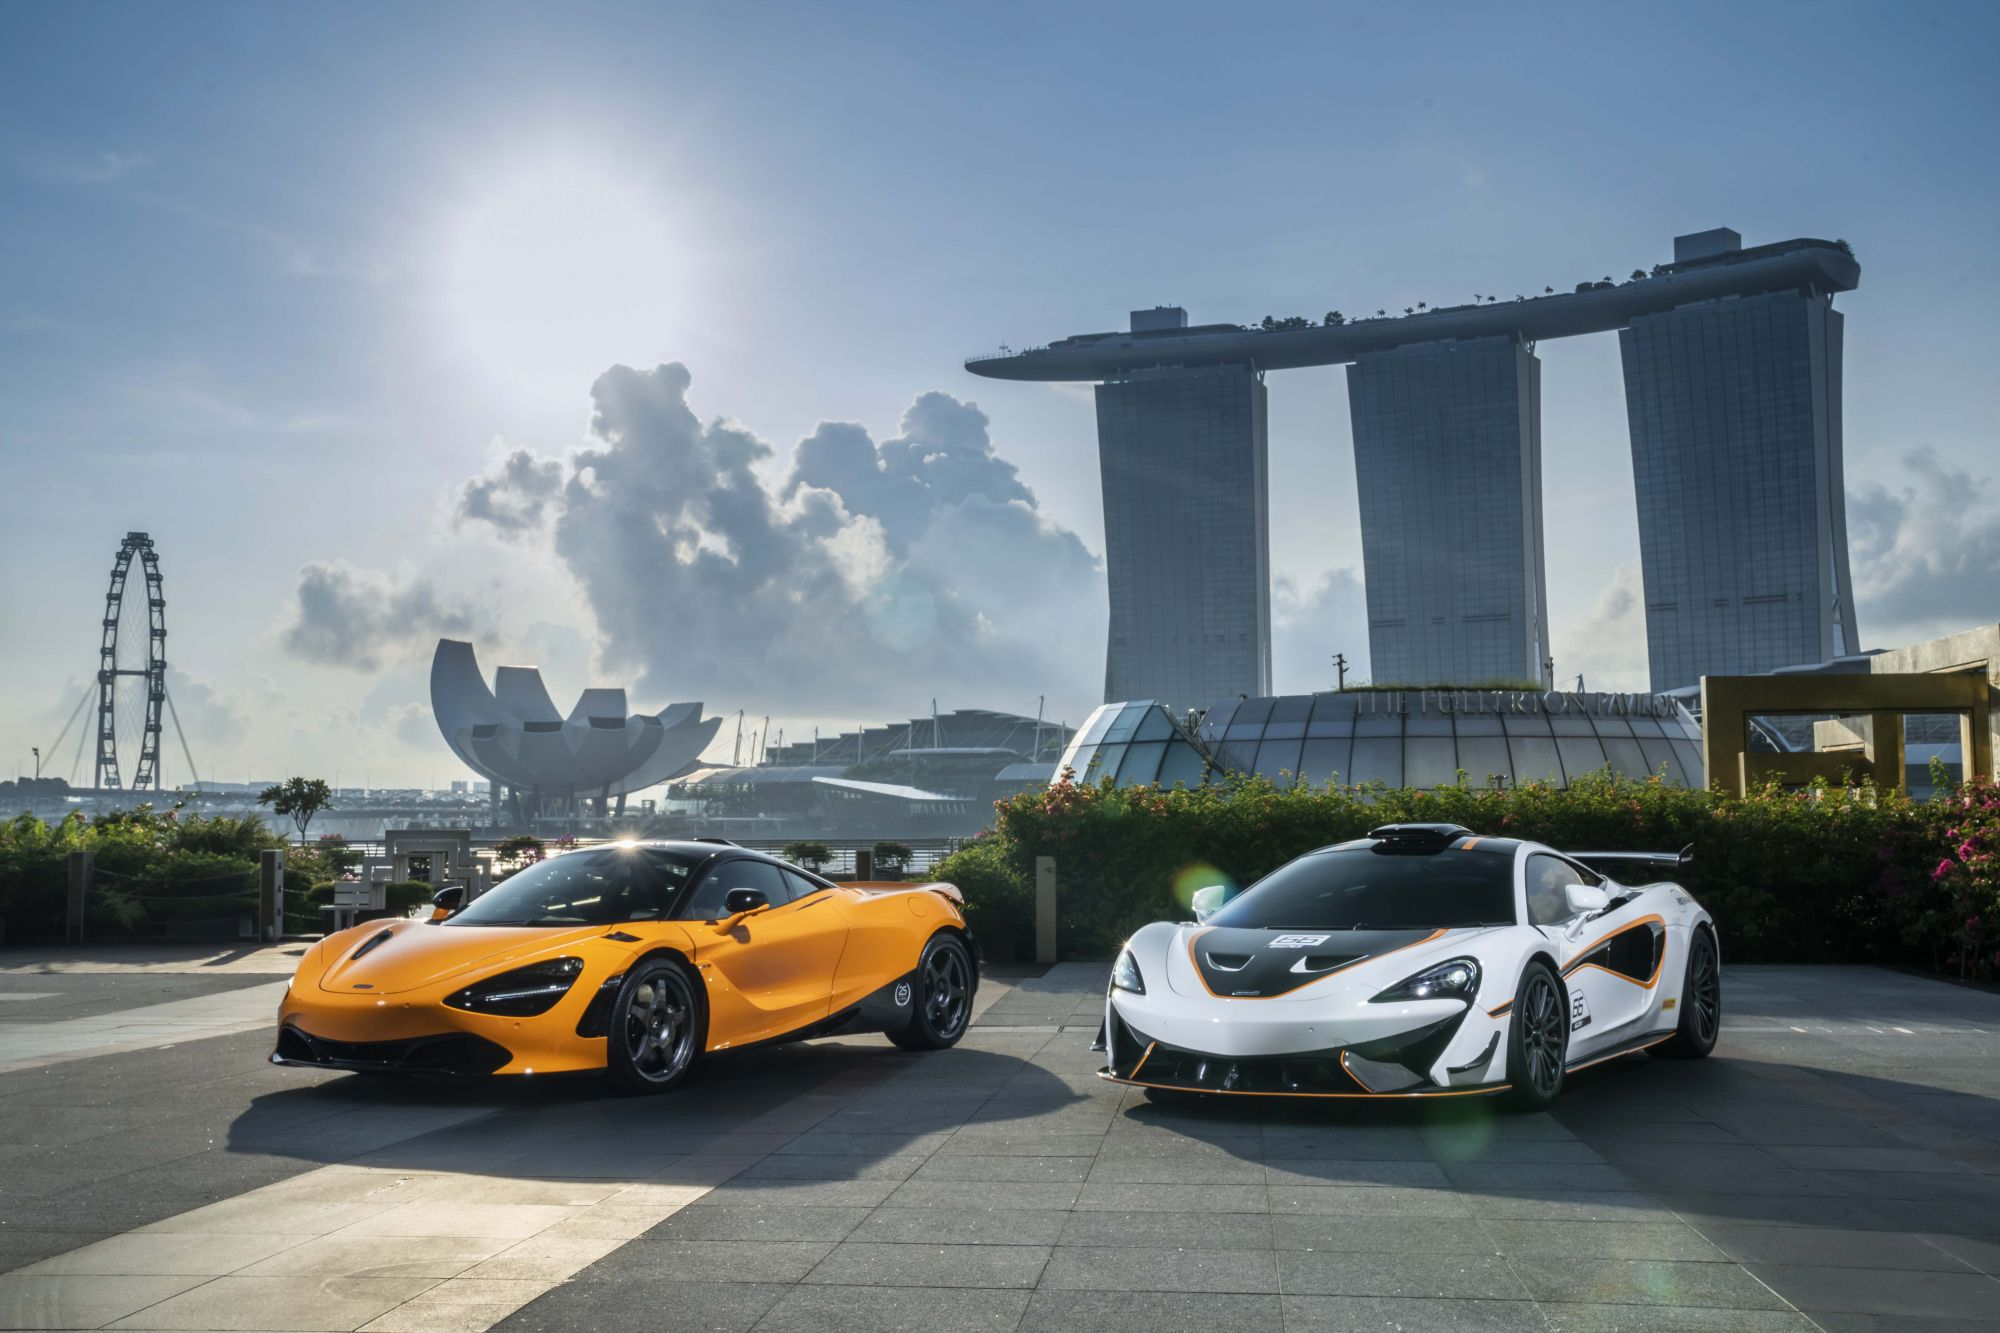 Mclaren Debuts the Limited-Edition and Ultra-Expensive Supercar, Elva, in Singapore